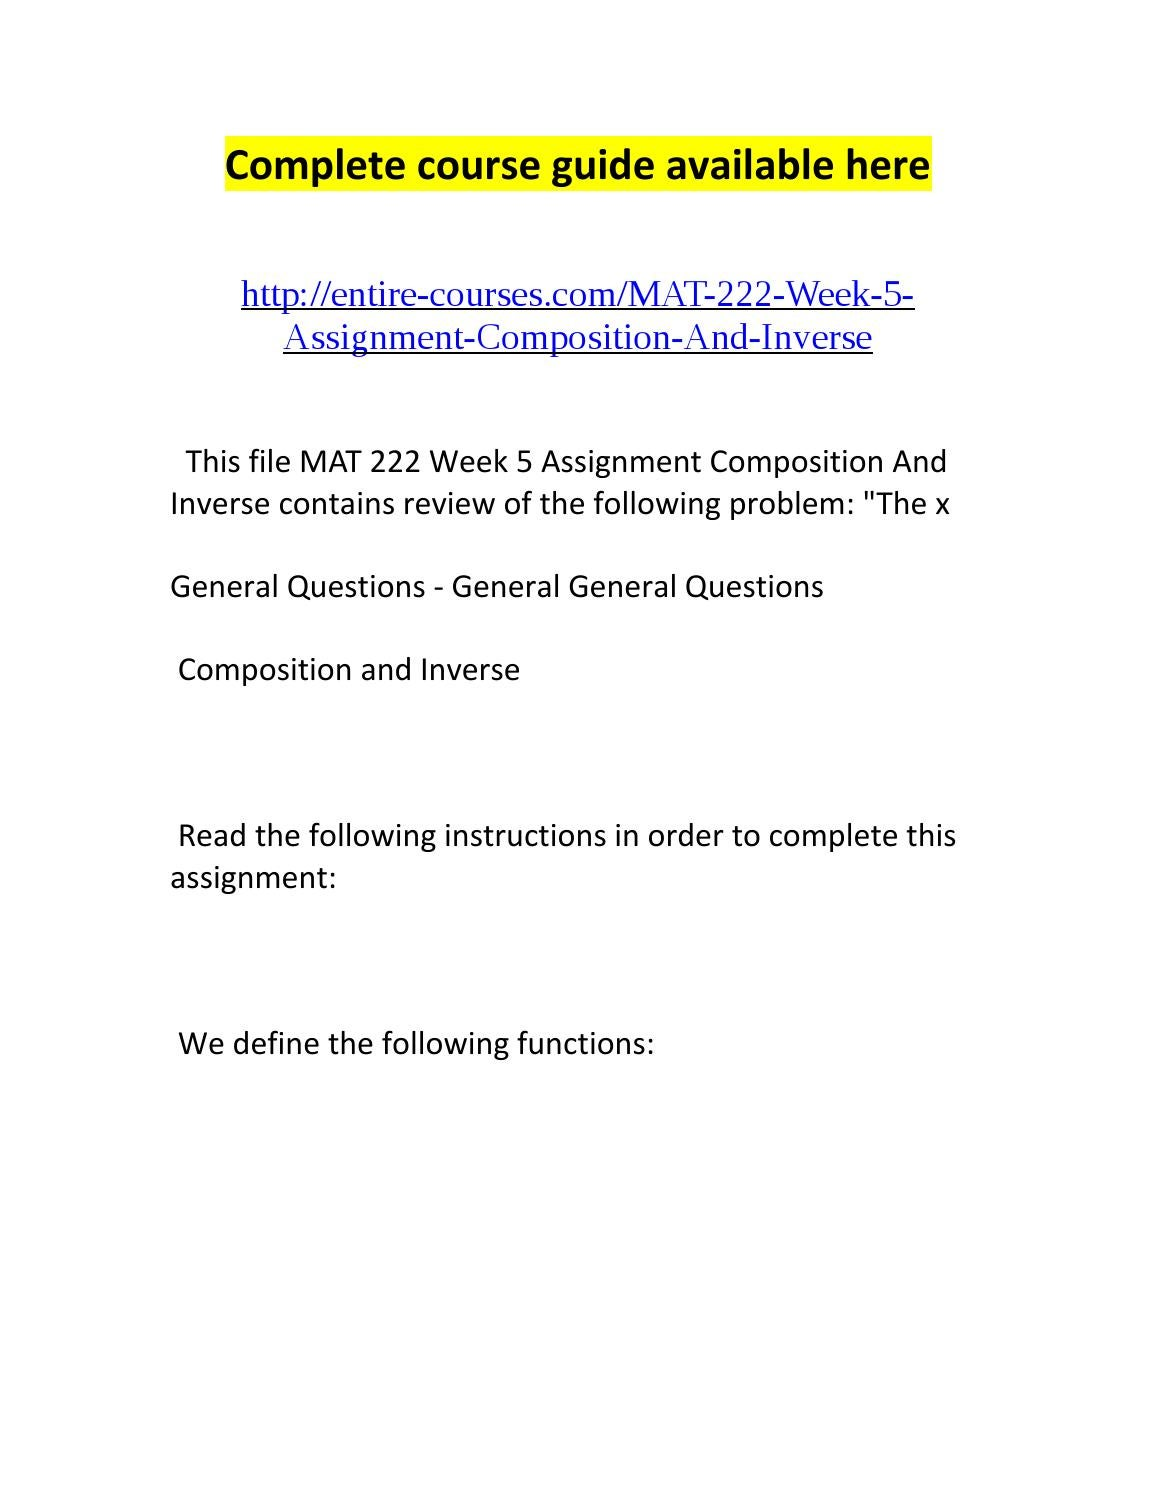 mat 222 week 1 assignment Solving proportion read the following instructions to complete this assignment: solve problem 56 on page 437 of elementary and intermediate algebra set.